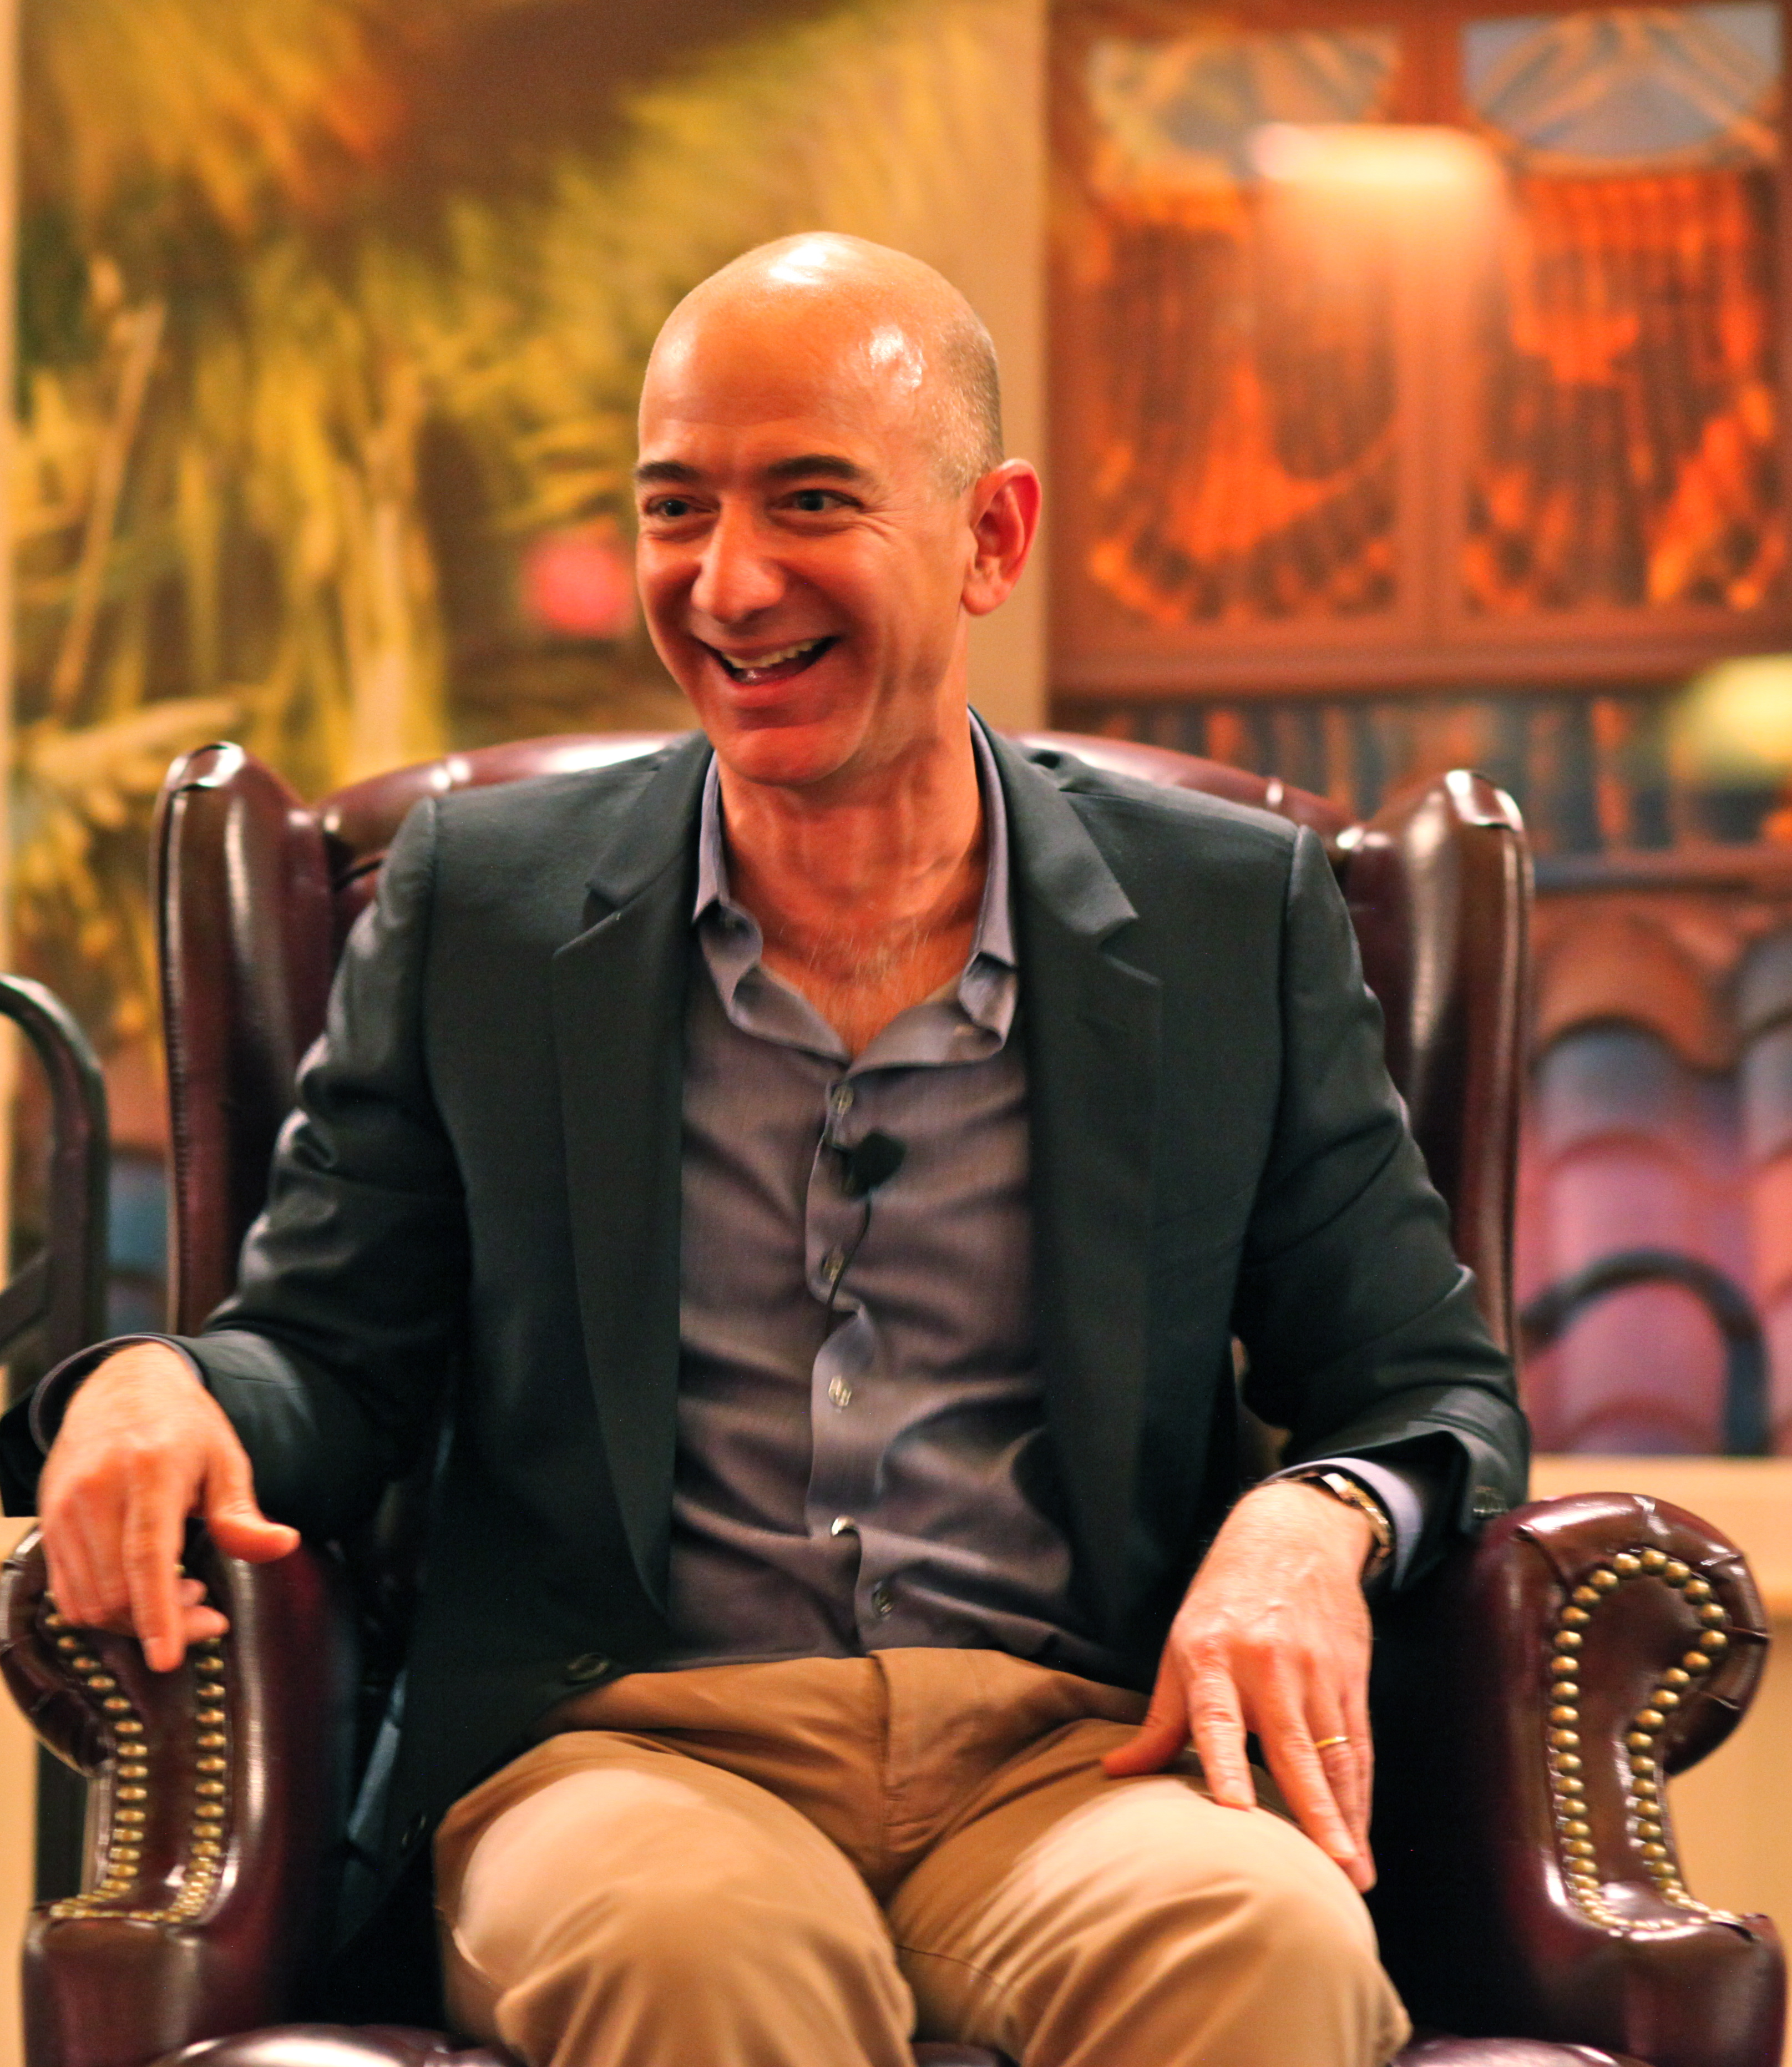 Who Is the Richest Man in the World 2019?